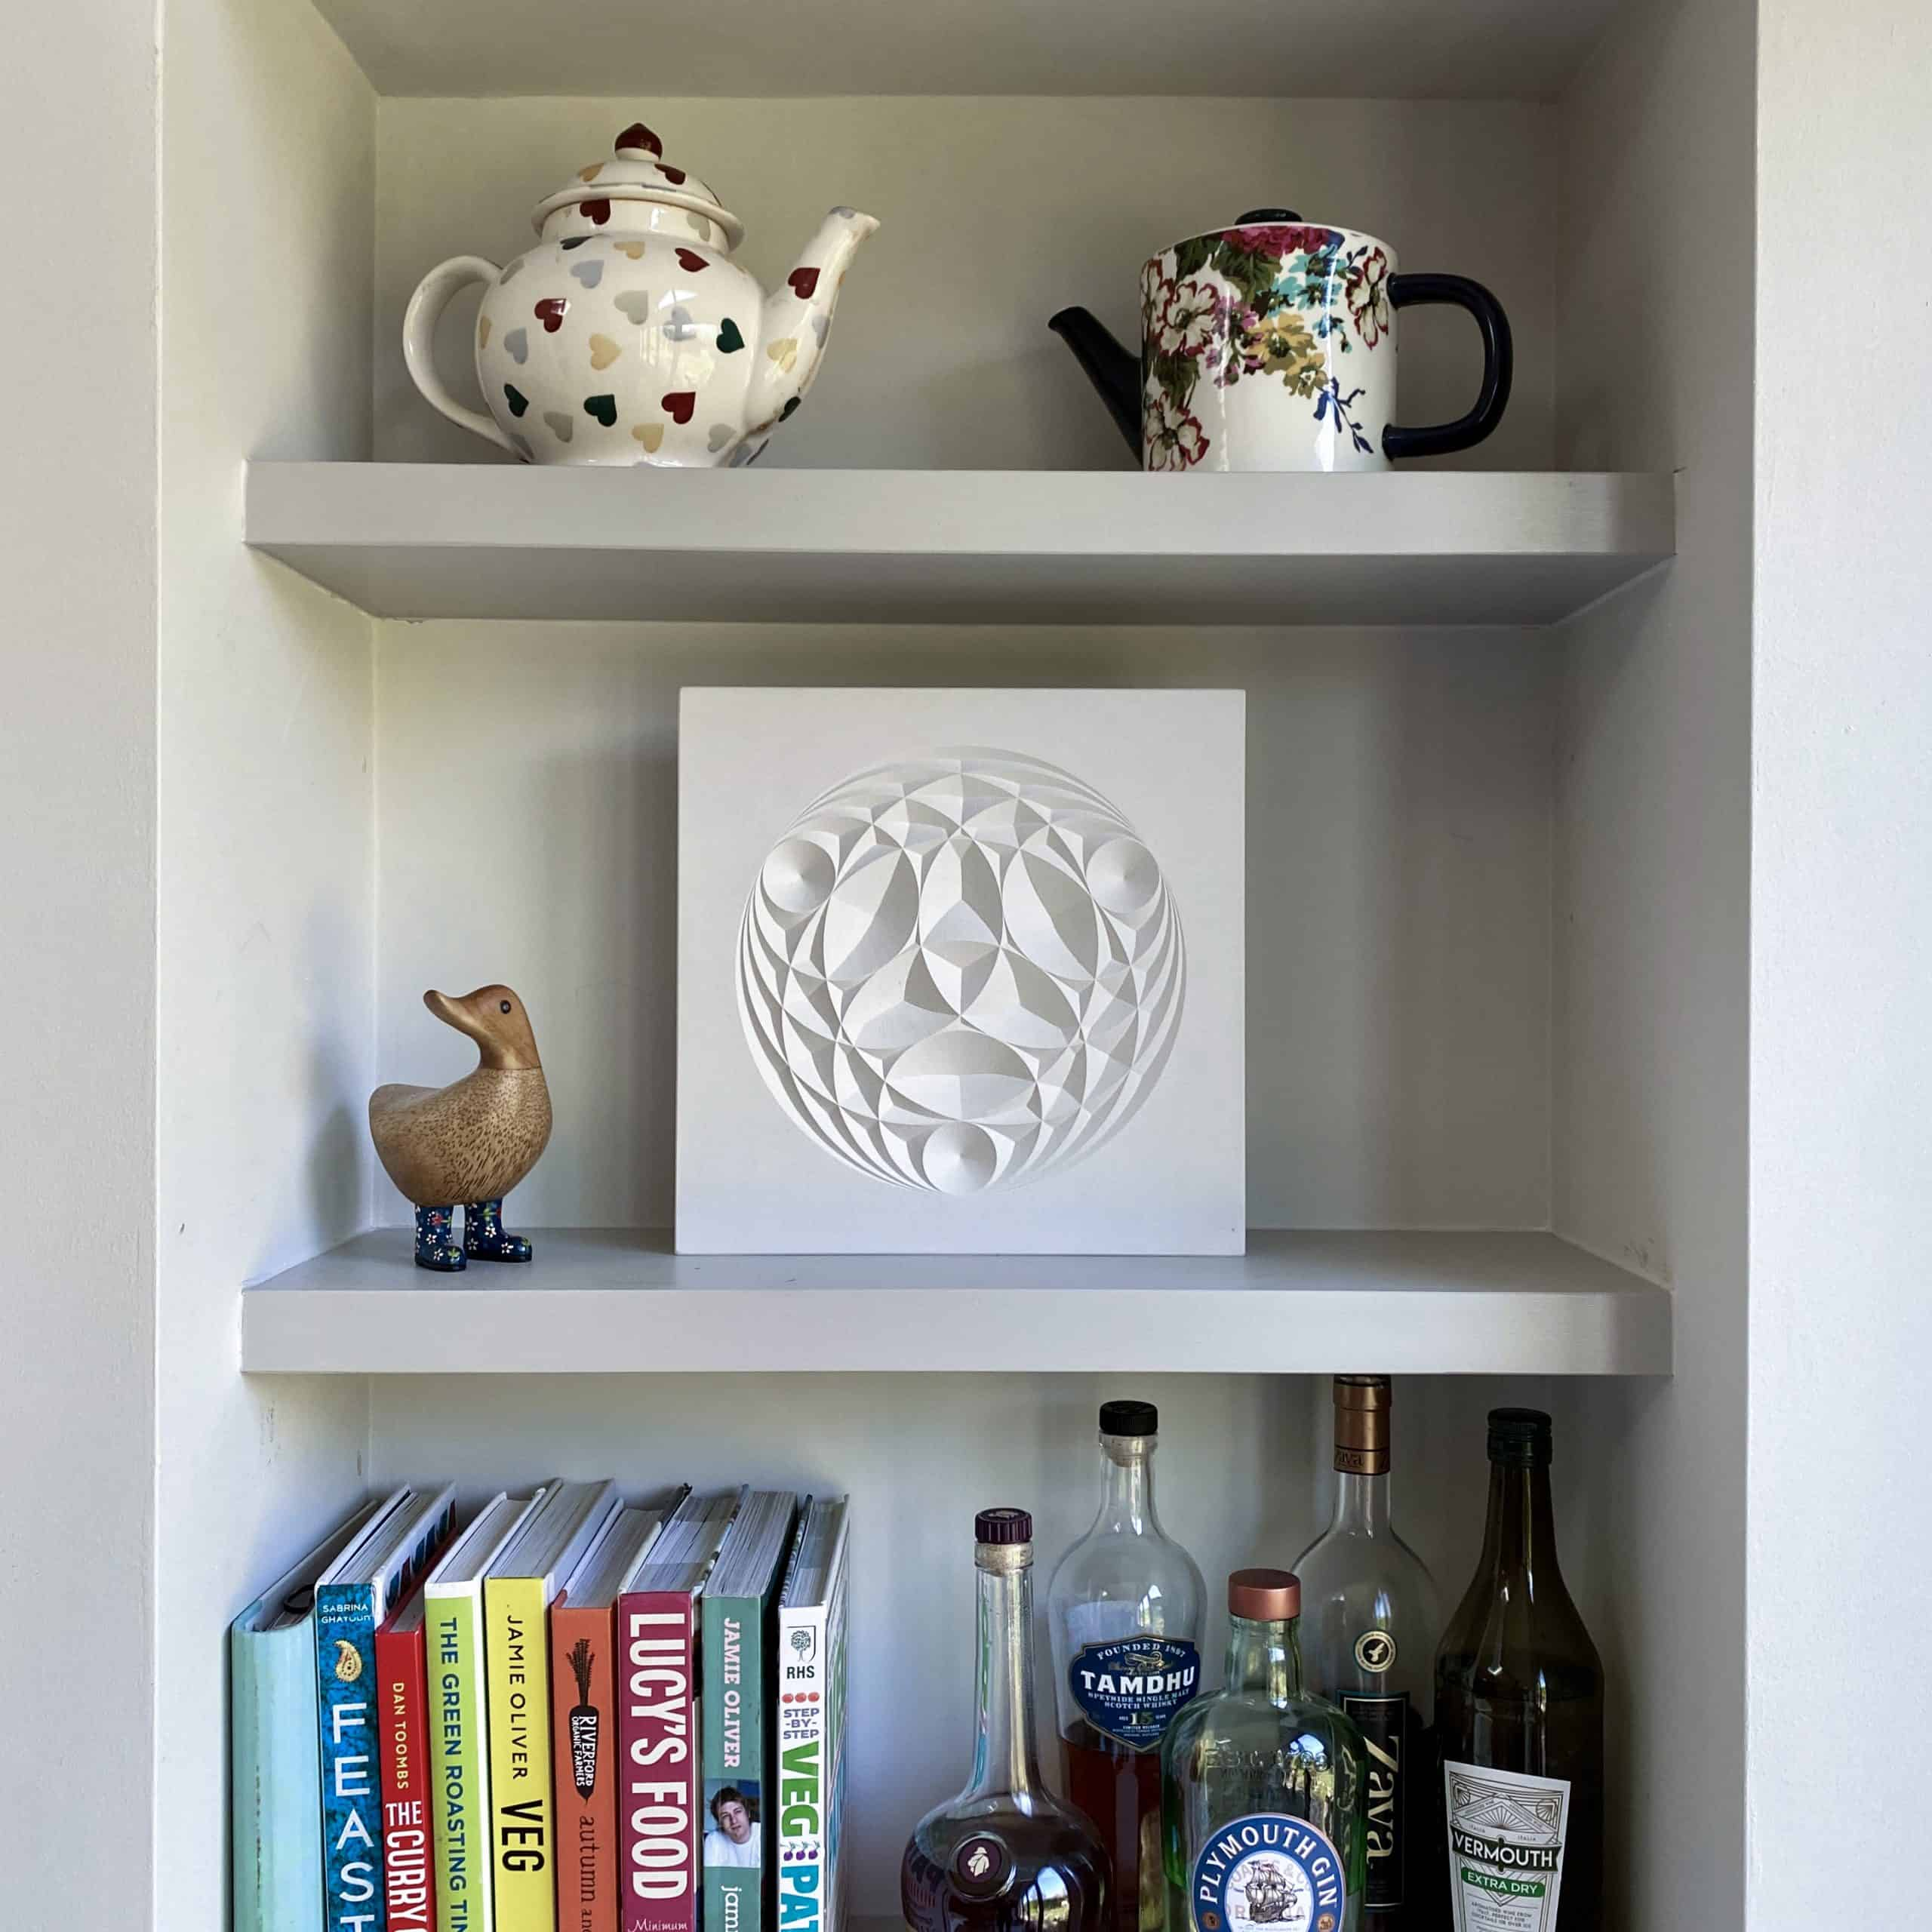 Light coloured cast sitting on a kitchen shelf with tea pots and recipe books